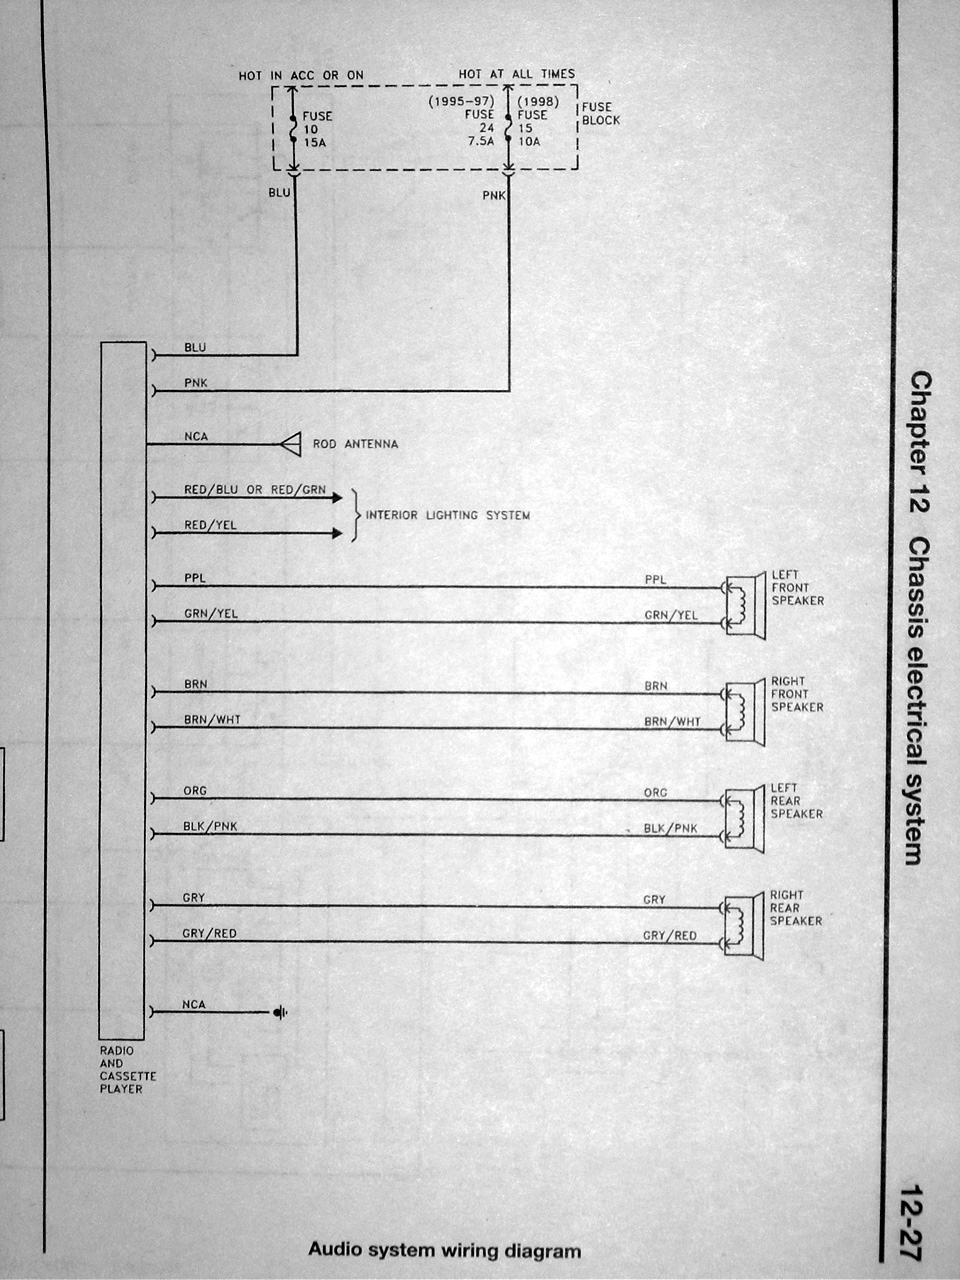 DSC01849 wiring diagram thread *useful info* nissan forum 2000 nissan maxima bose stereo wiring diagram at virtualis.co